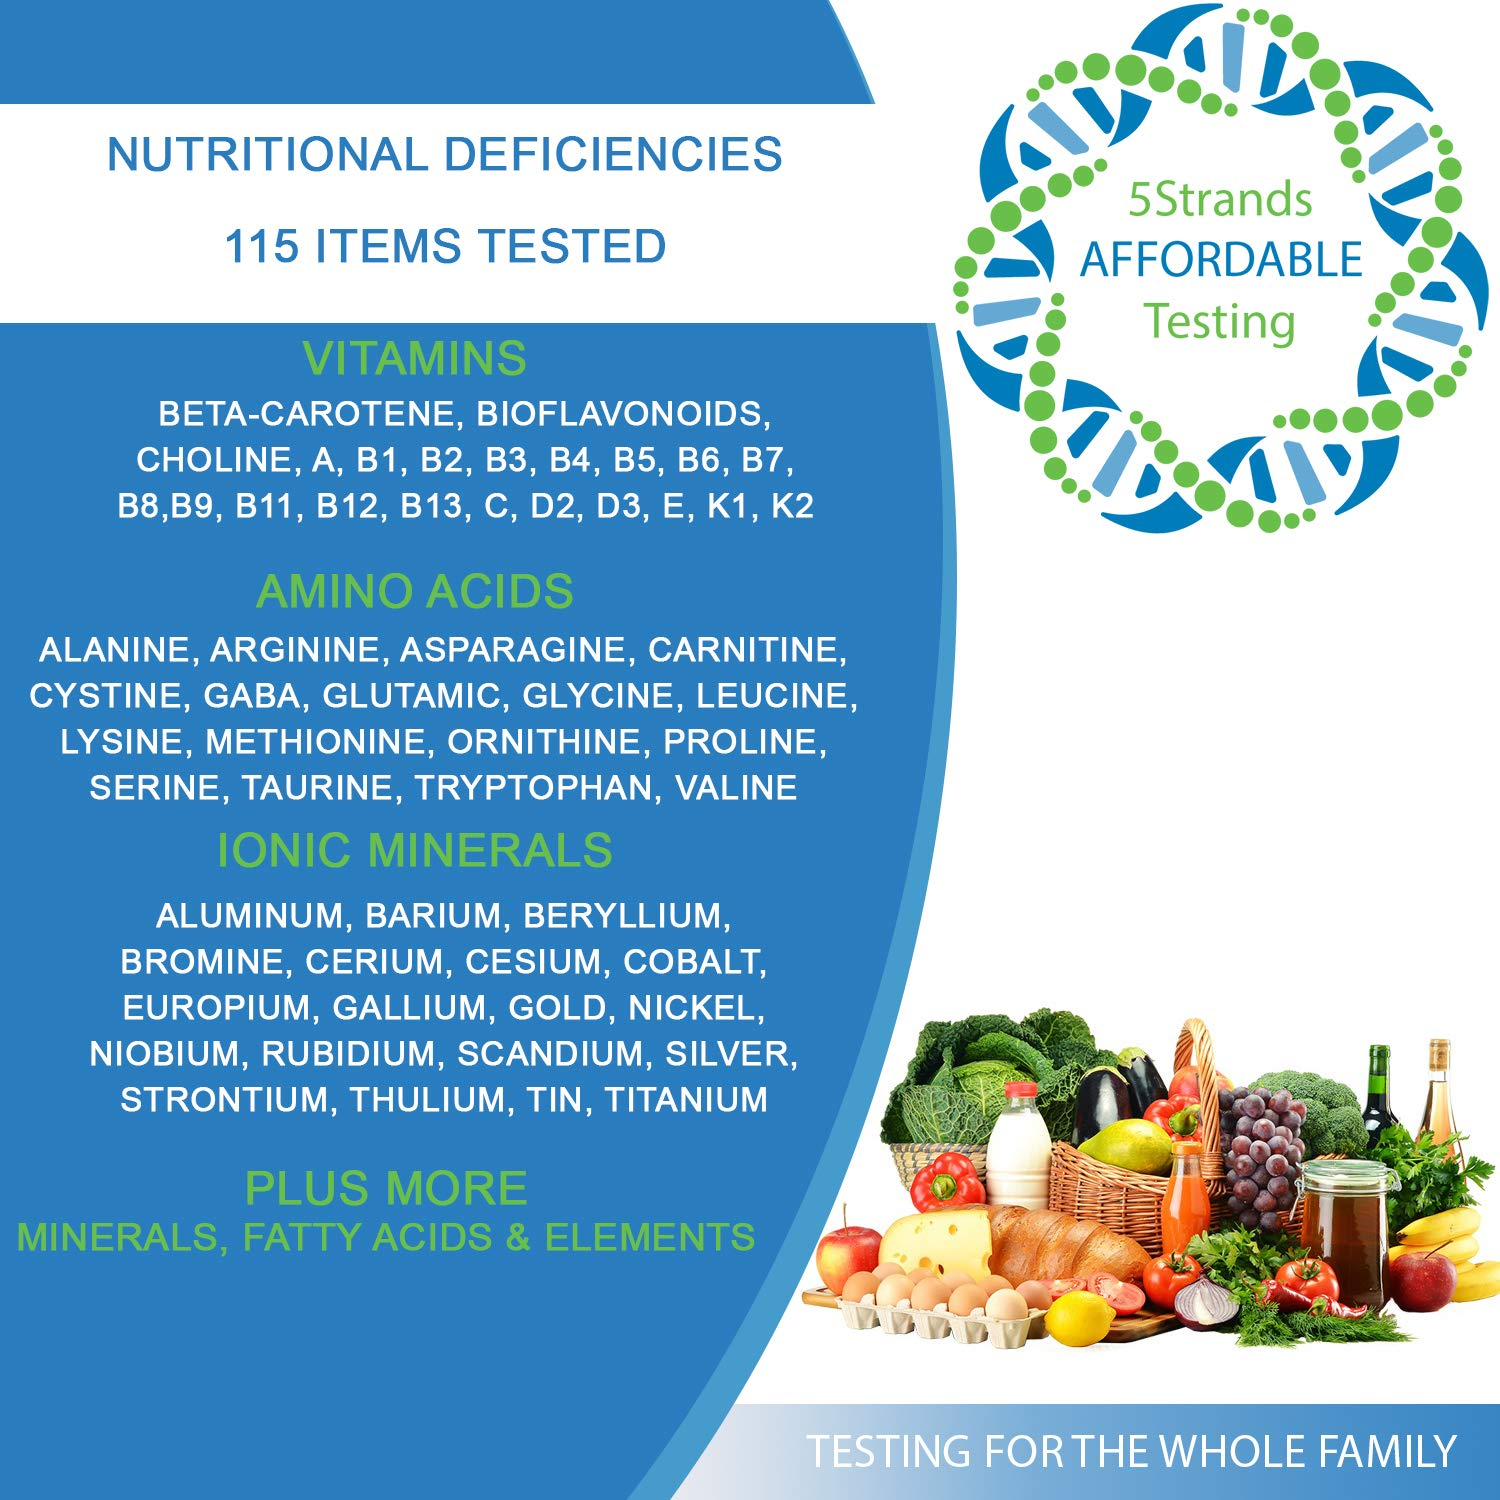 5Strands | Affordable Allergy & Intolerance Adult Test | at Home Environmental & Food Intolerance Kit | Tests for Over 350 Sensitivities & Allergens | Hair Analysis | Results in 1-2 Weeks | 1 Pack by 5Strands (Image #5)